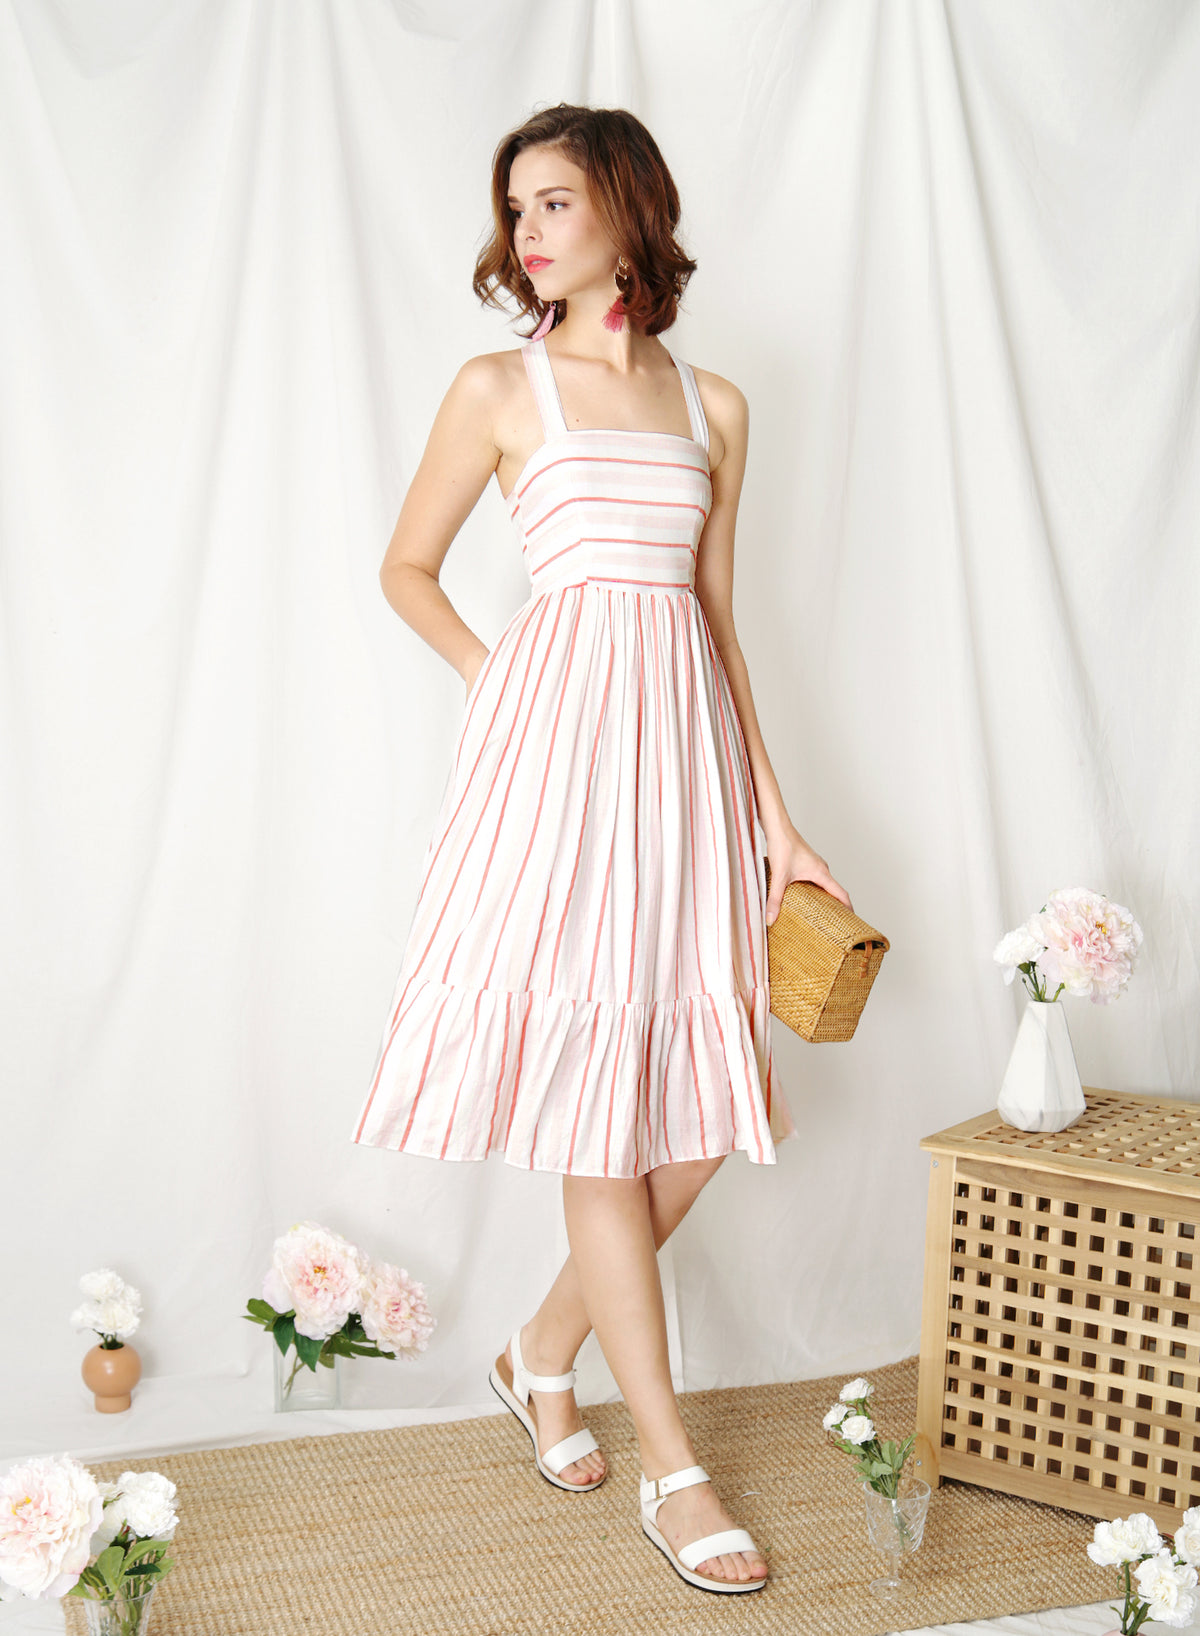 Fable Cross Back Midi Dress (Pink Stripes) at $ 43.50 only sold at And Well Dressed Online Fashion Store Singapore